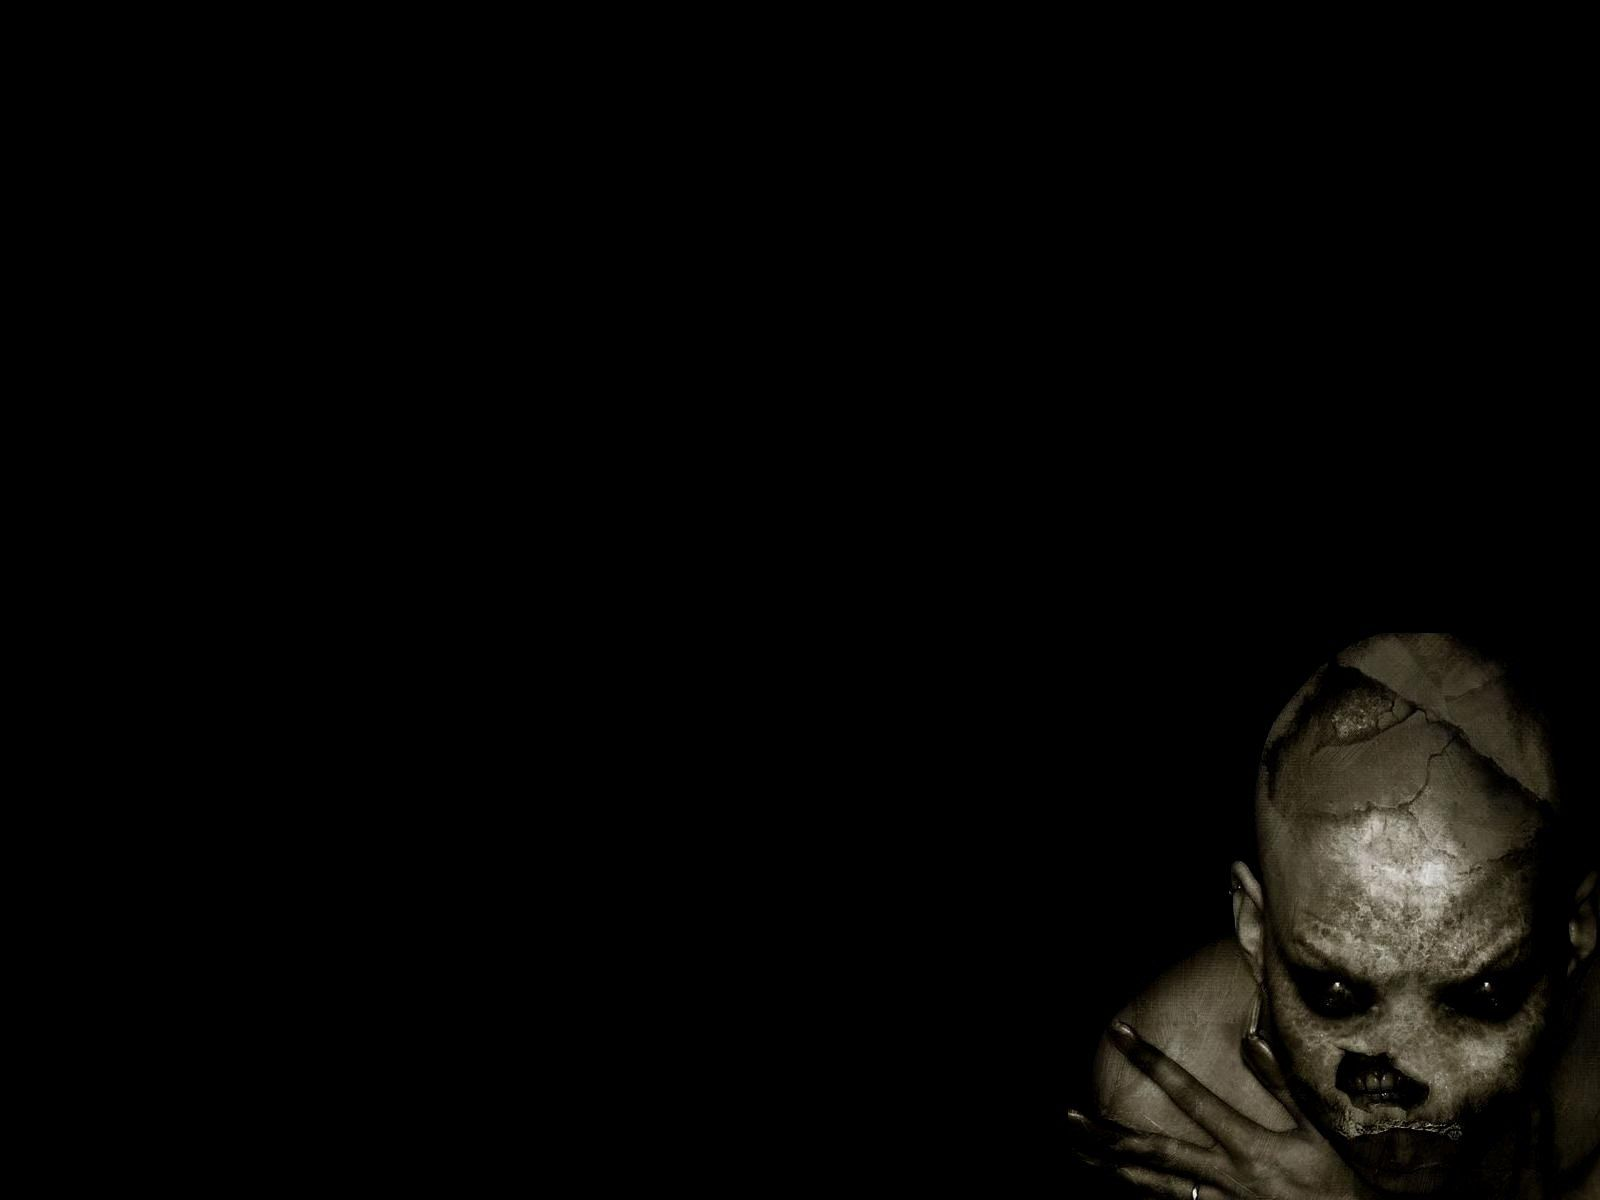 Zombie Desktop Wallpaper Posted By Christopher Walker